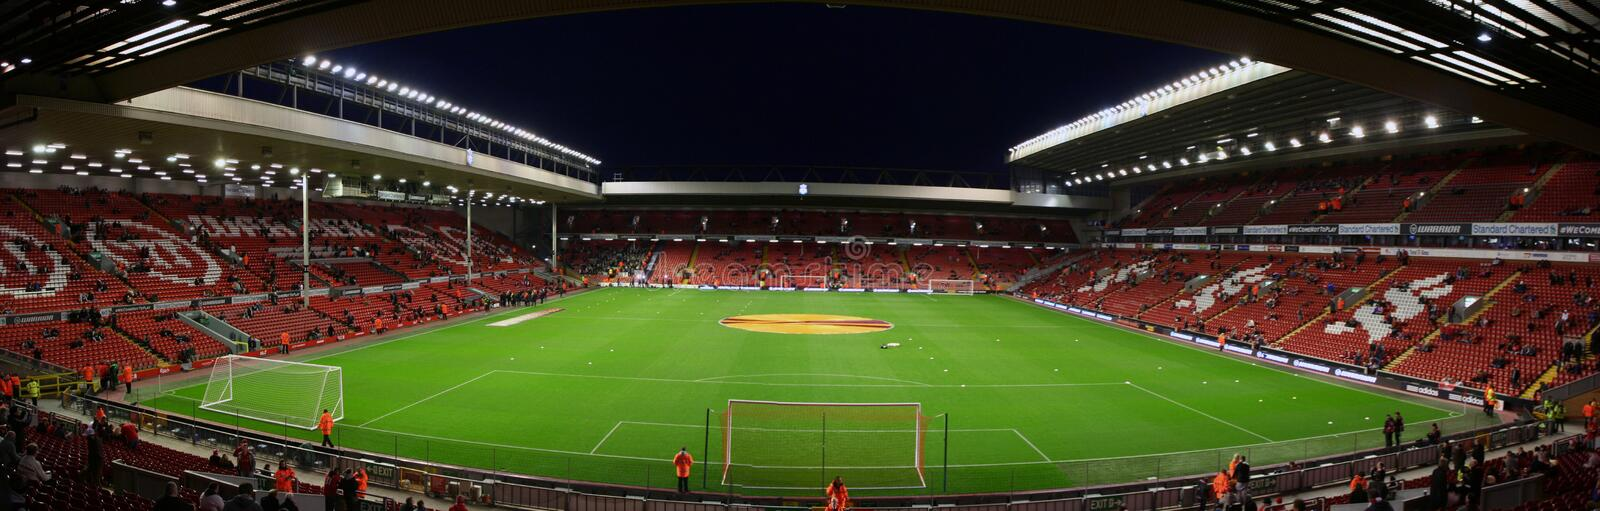 Anfield stadium royalty free stock photo